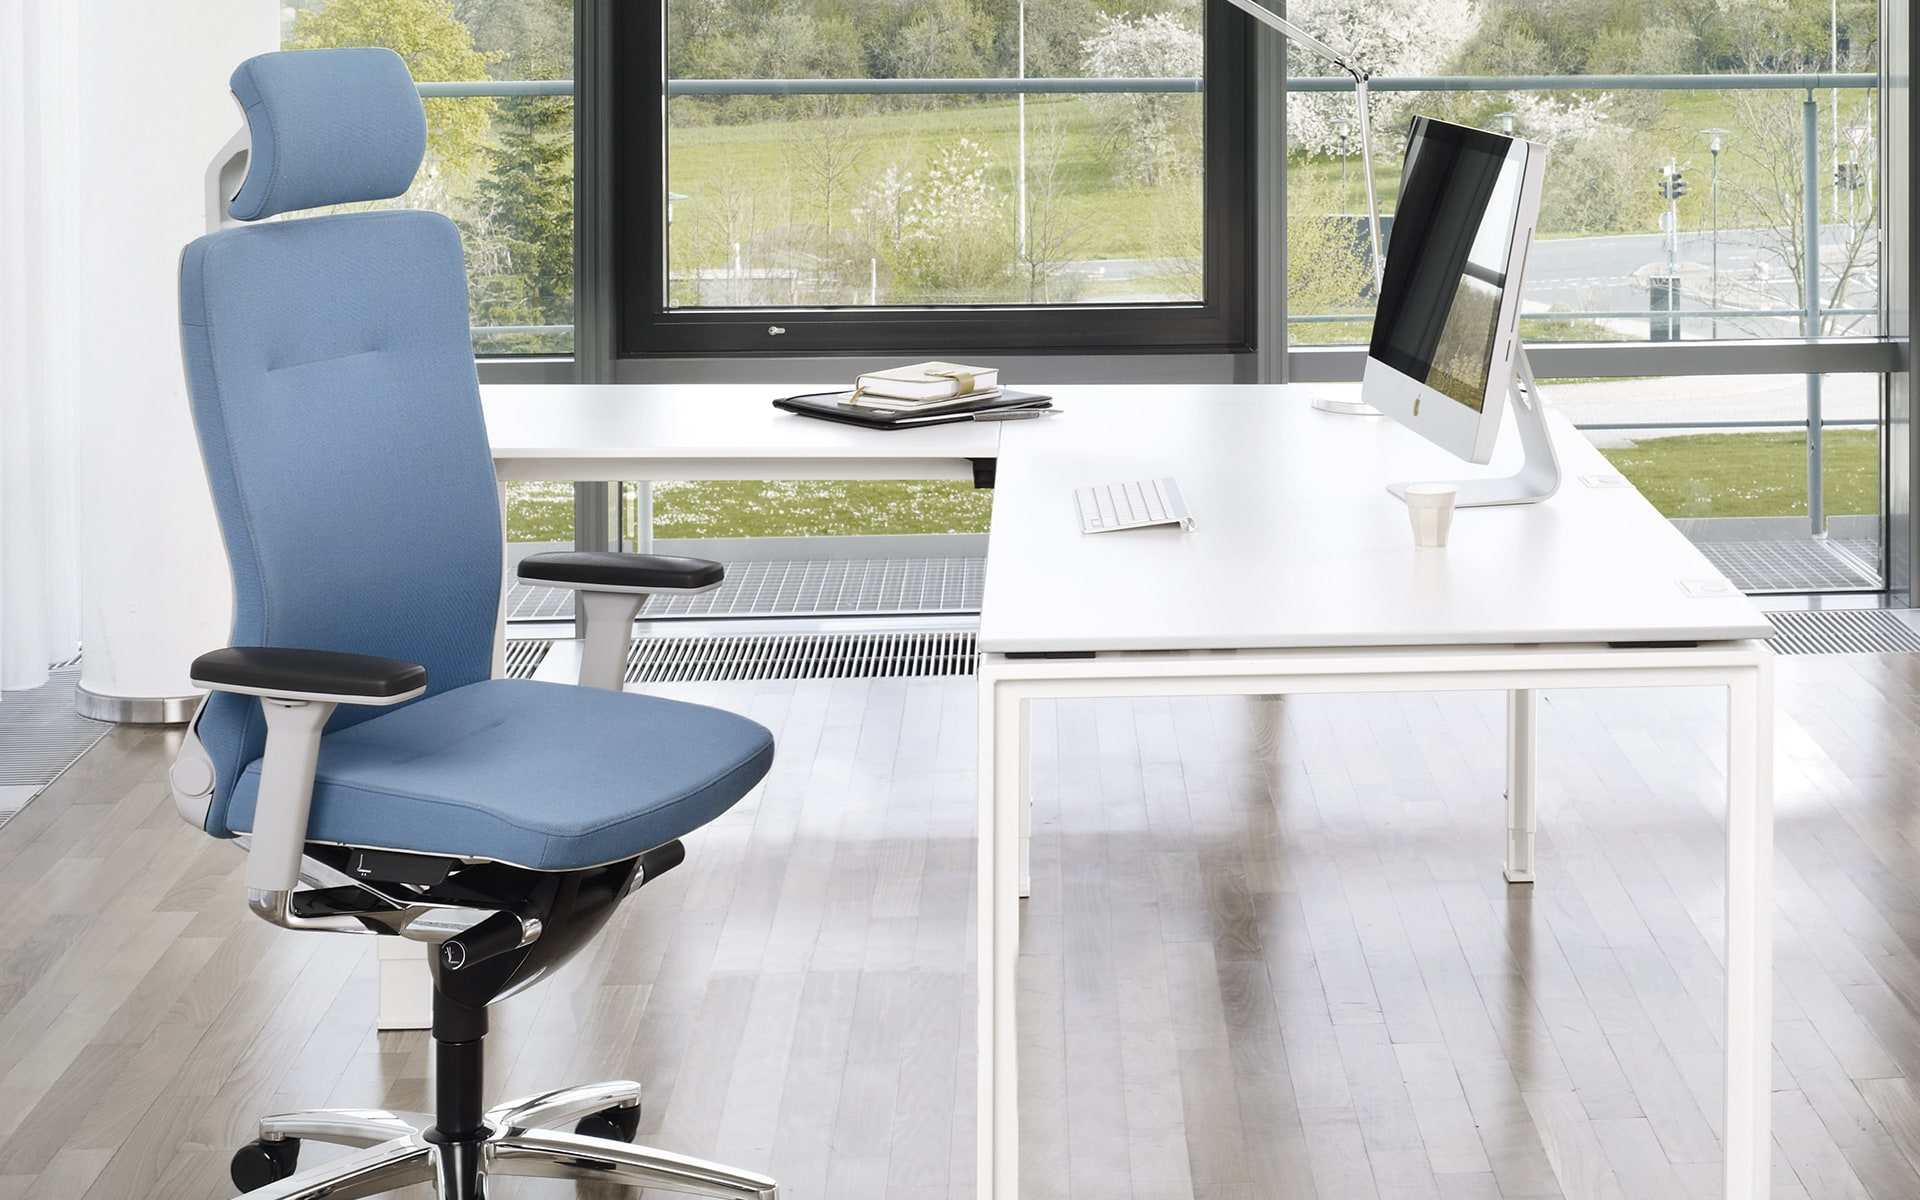 König + Neurath Lamiga office chair by ITO Design with blue upholstery at bright workplace